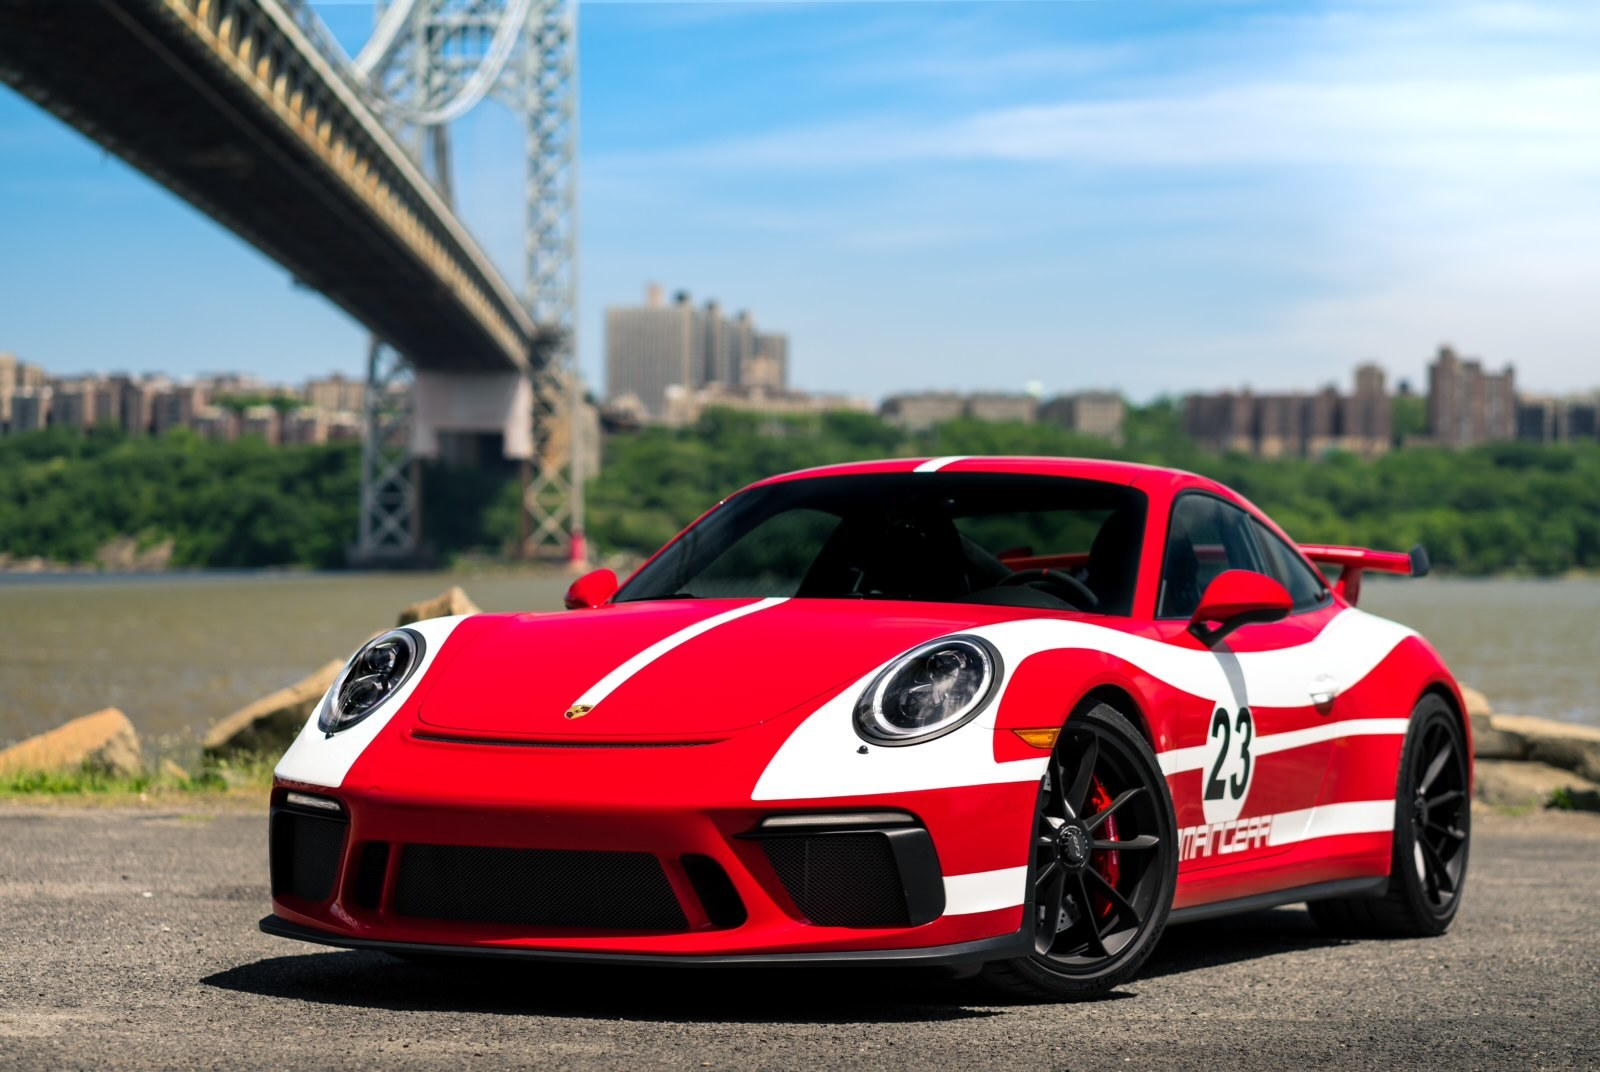 2019 Guards Red Porsche GT3  picture, mods, upgrades